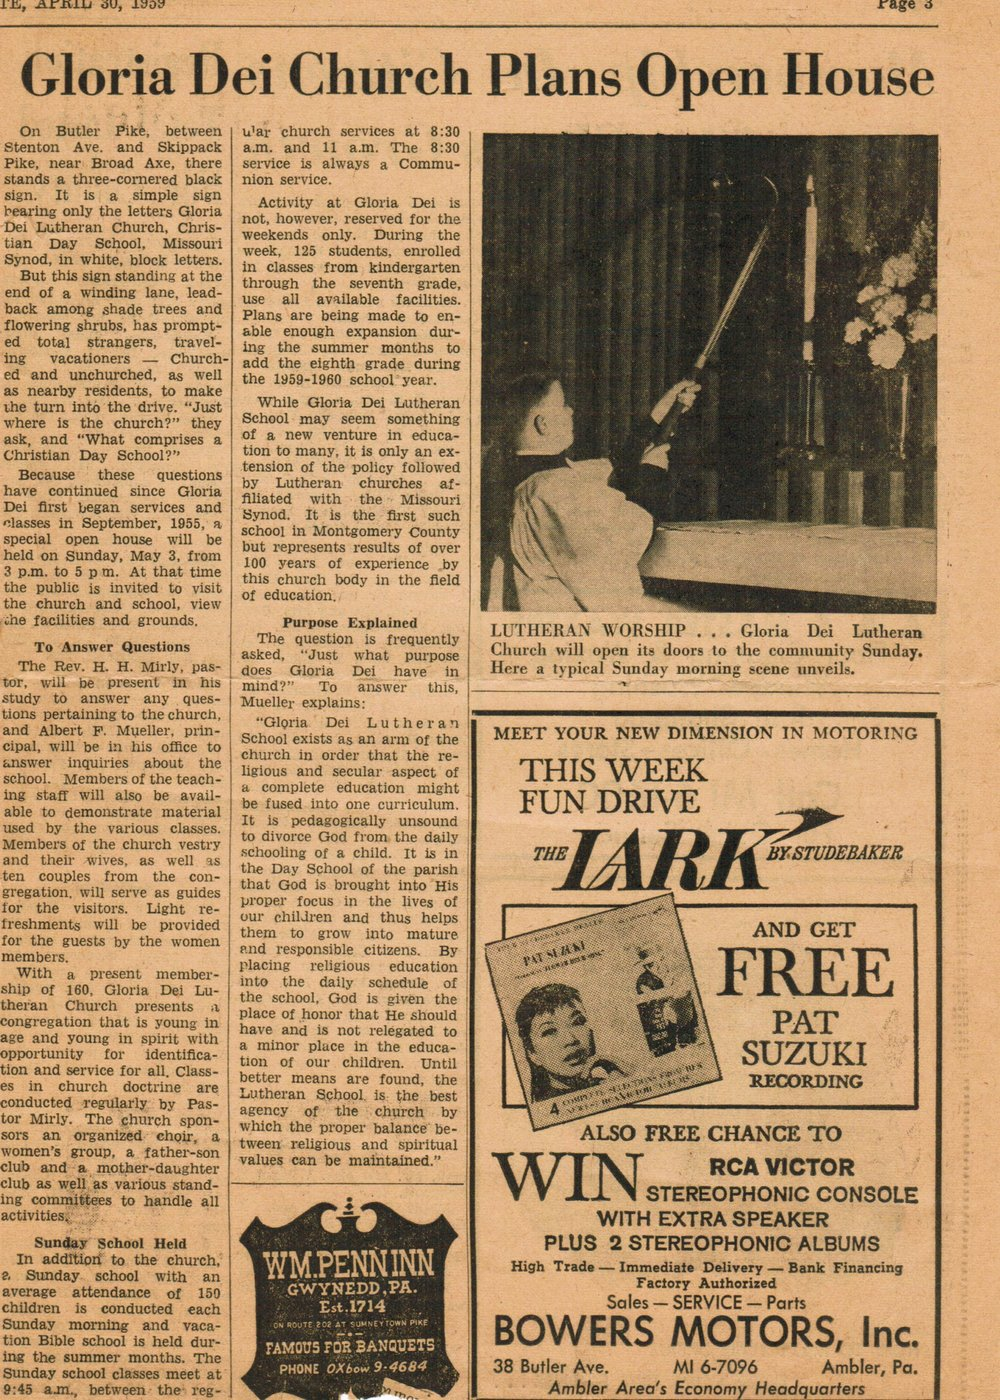 1959 Article